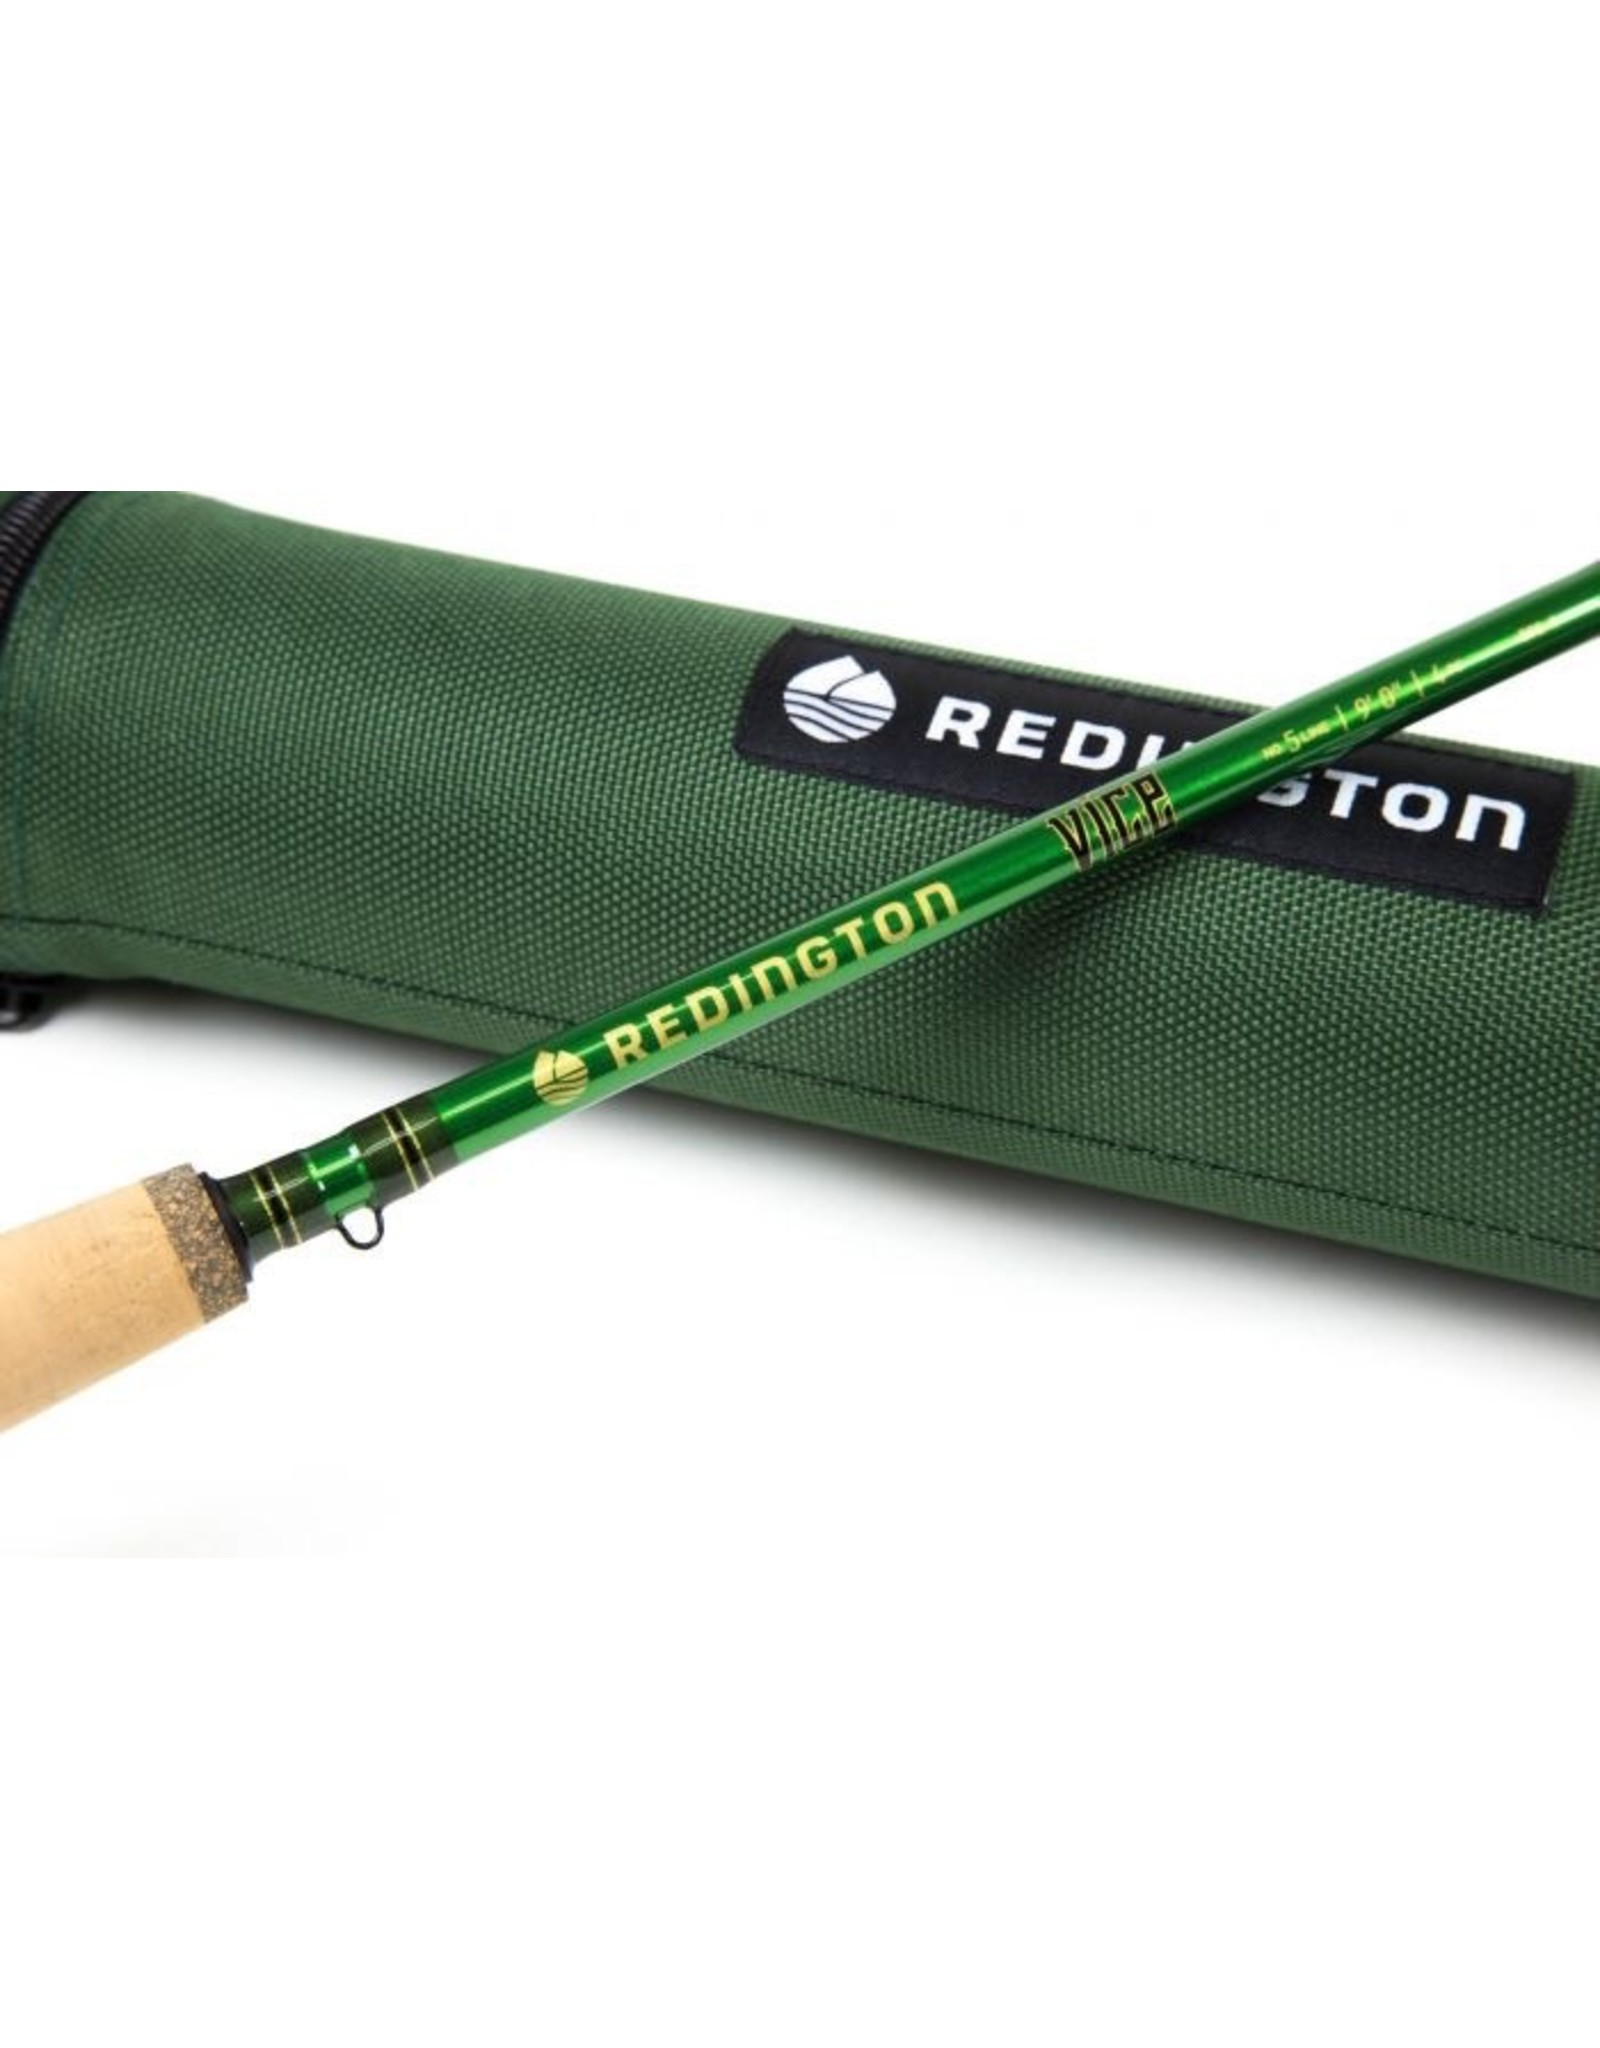 A classically styled fast action rod at an incredible price!